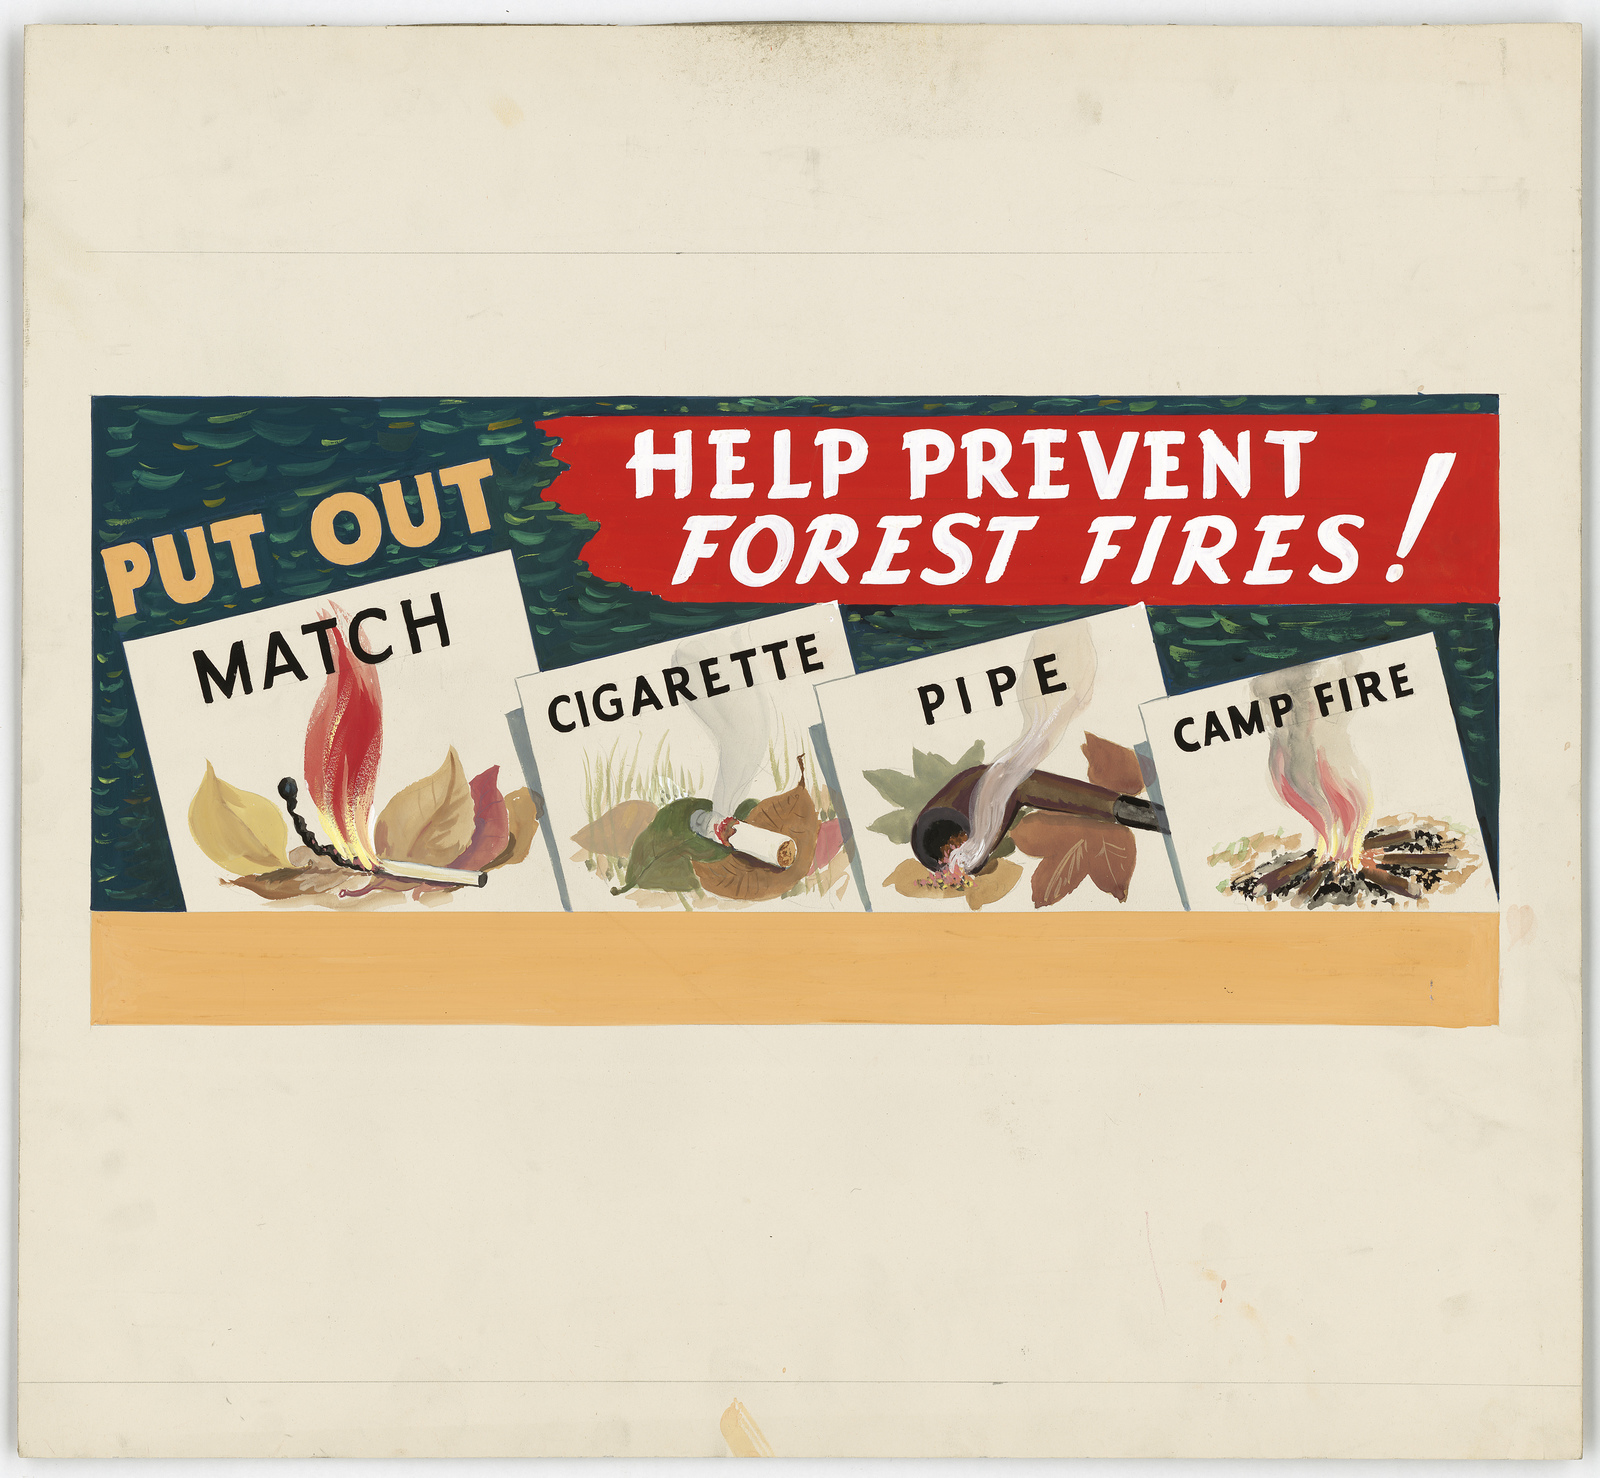 Help Prevent Forest Fires!  PUT OUT Match, Cigarette, Pipe, Camp Fire